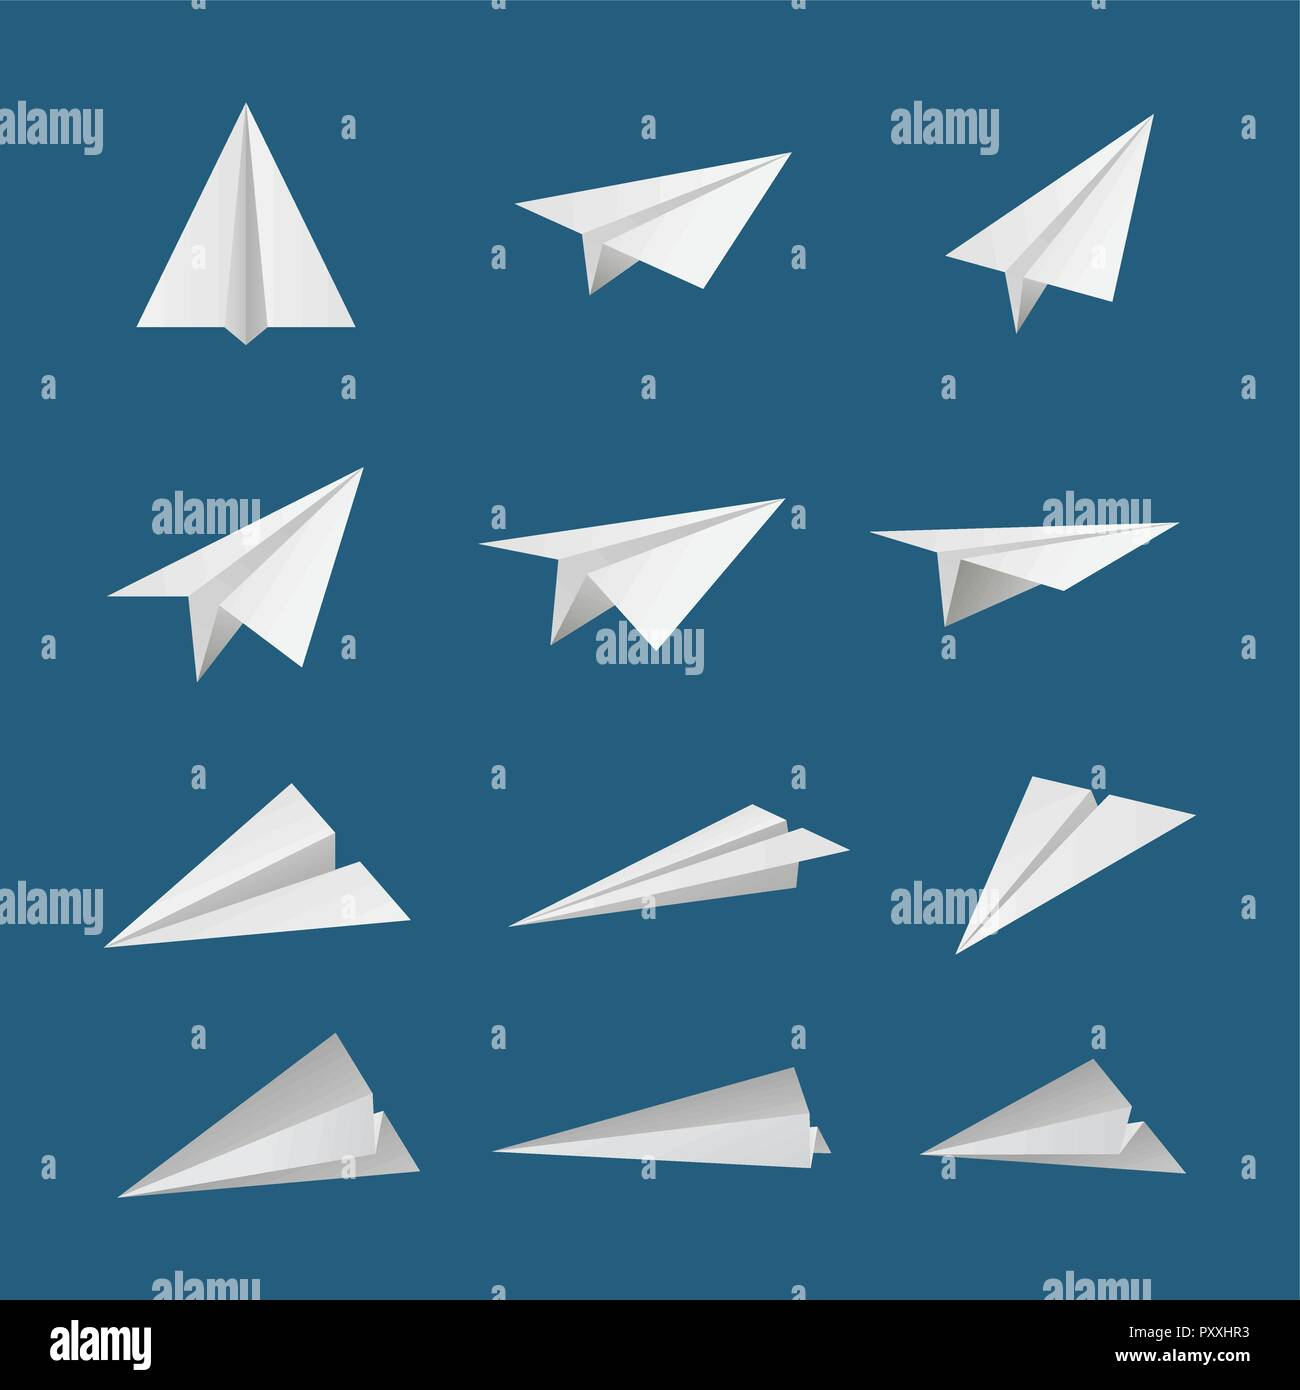 Best Paper Plane - How to Make a Paper Airplane Easy - Boomerang ... | 1390x1300